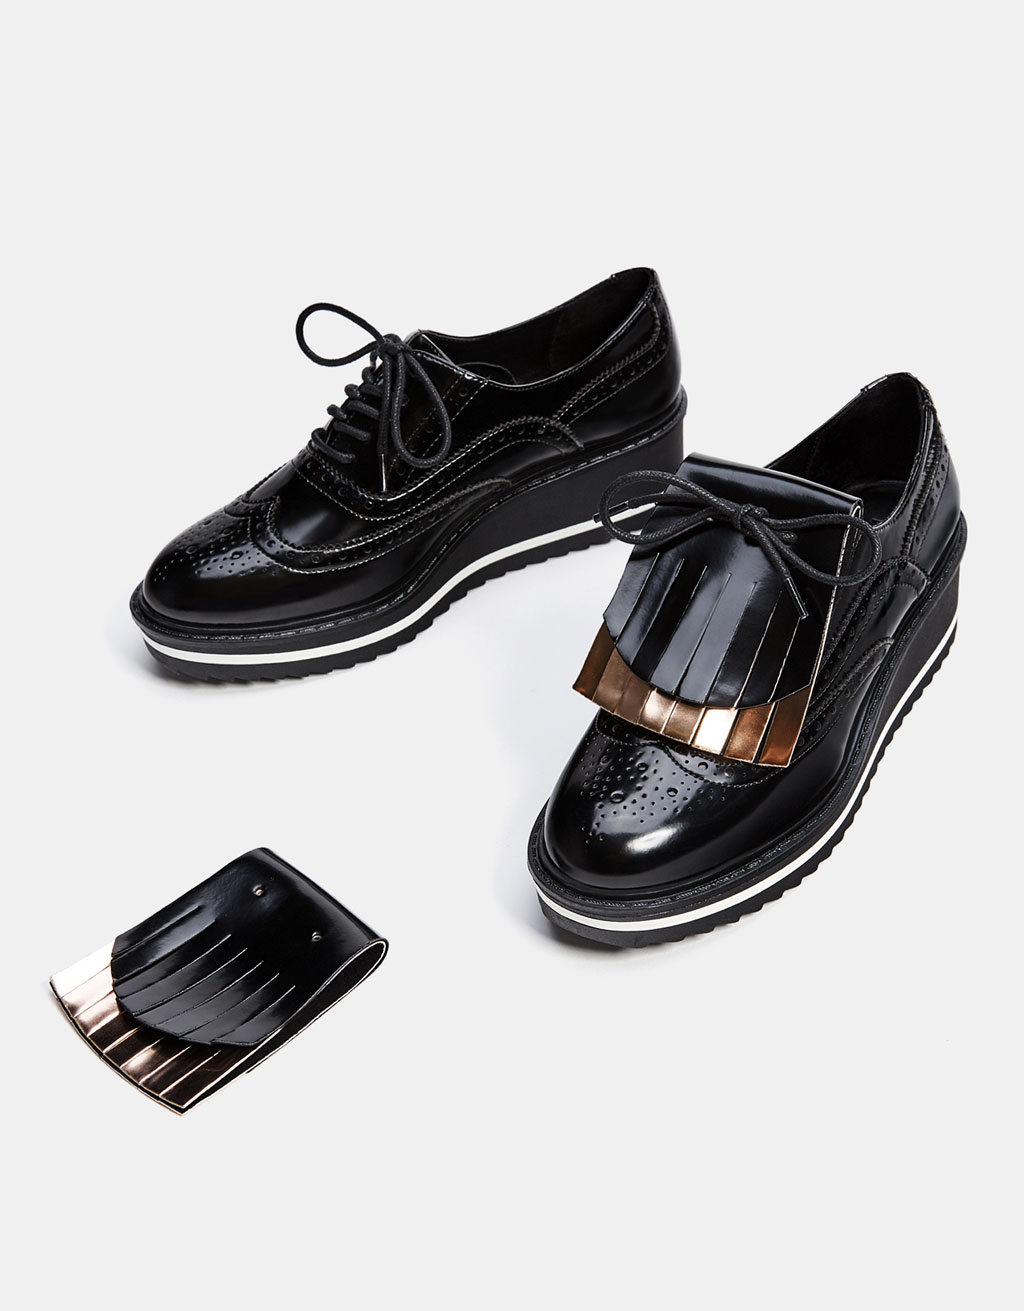 Flatform sneakers with broguing and removable, interchangeable foldover tongue